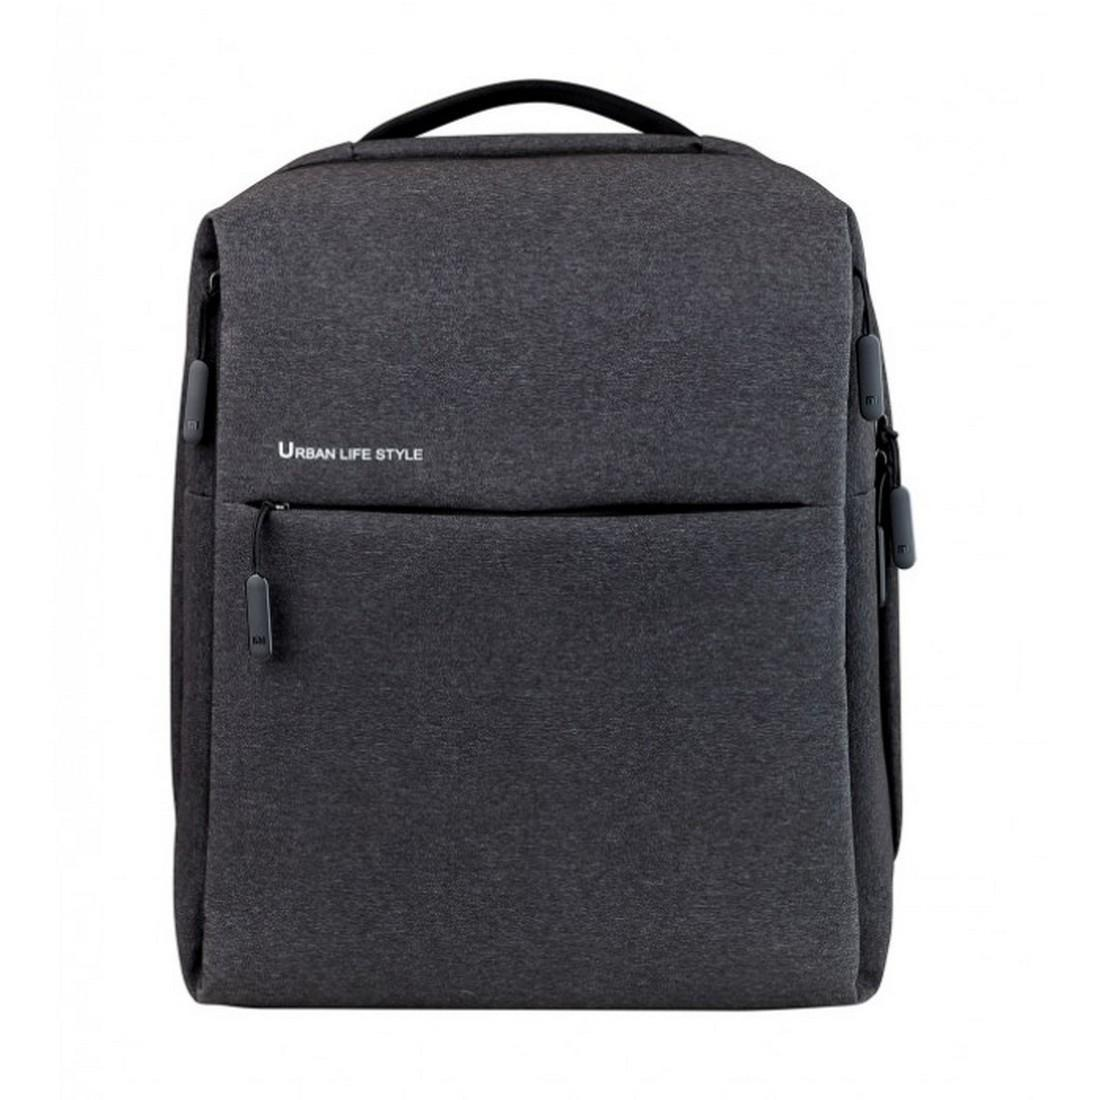 Рюкзак Xiaomi Urban Life Style Backpack